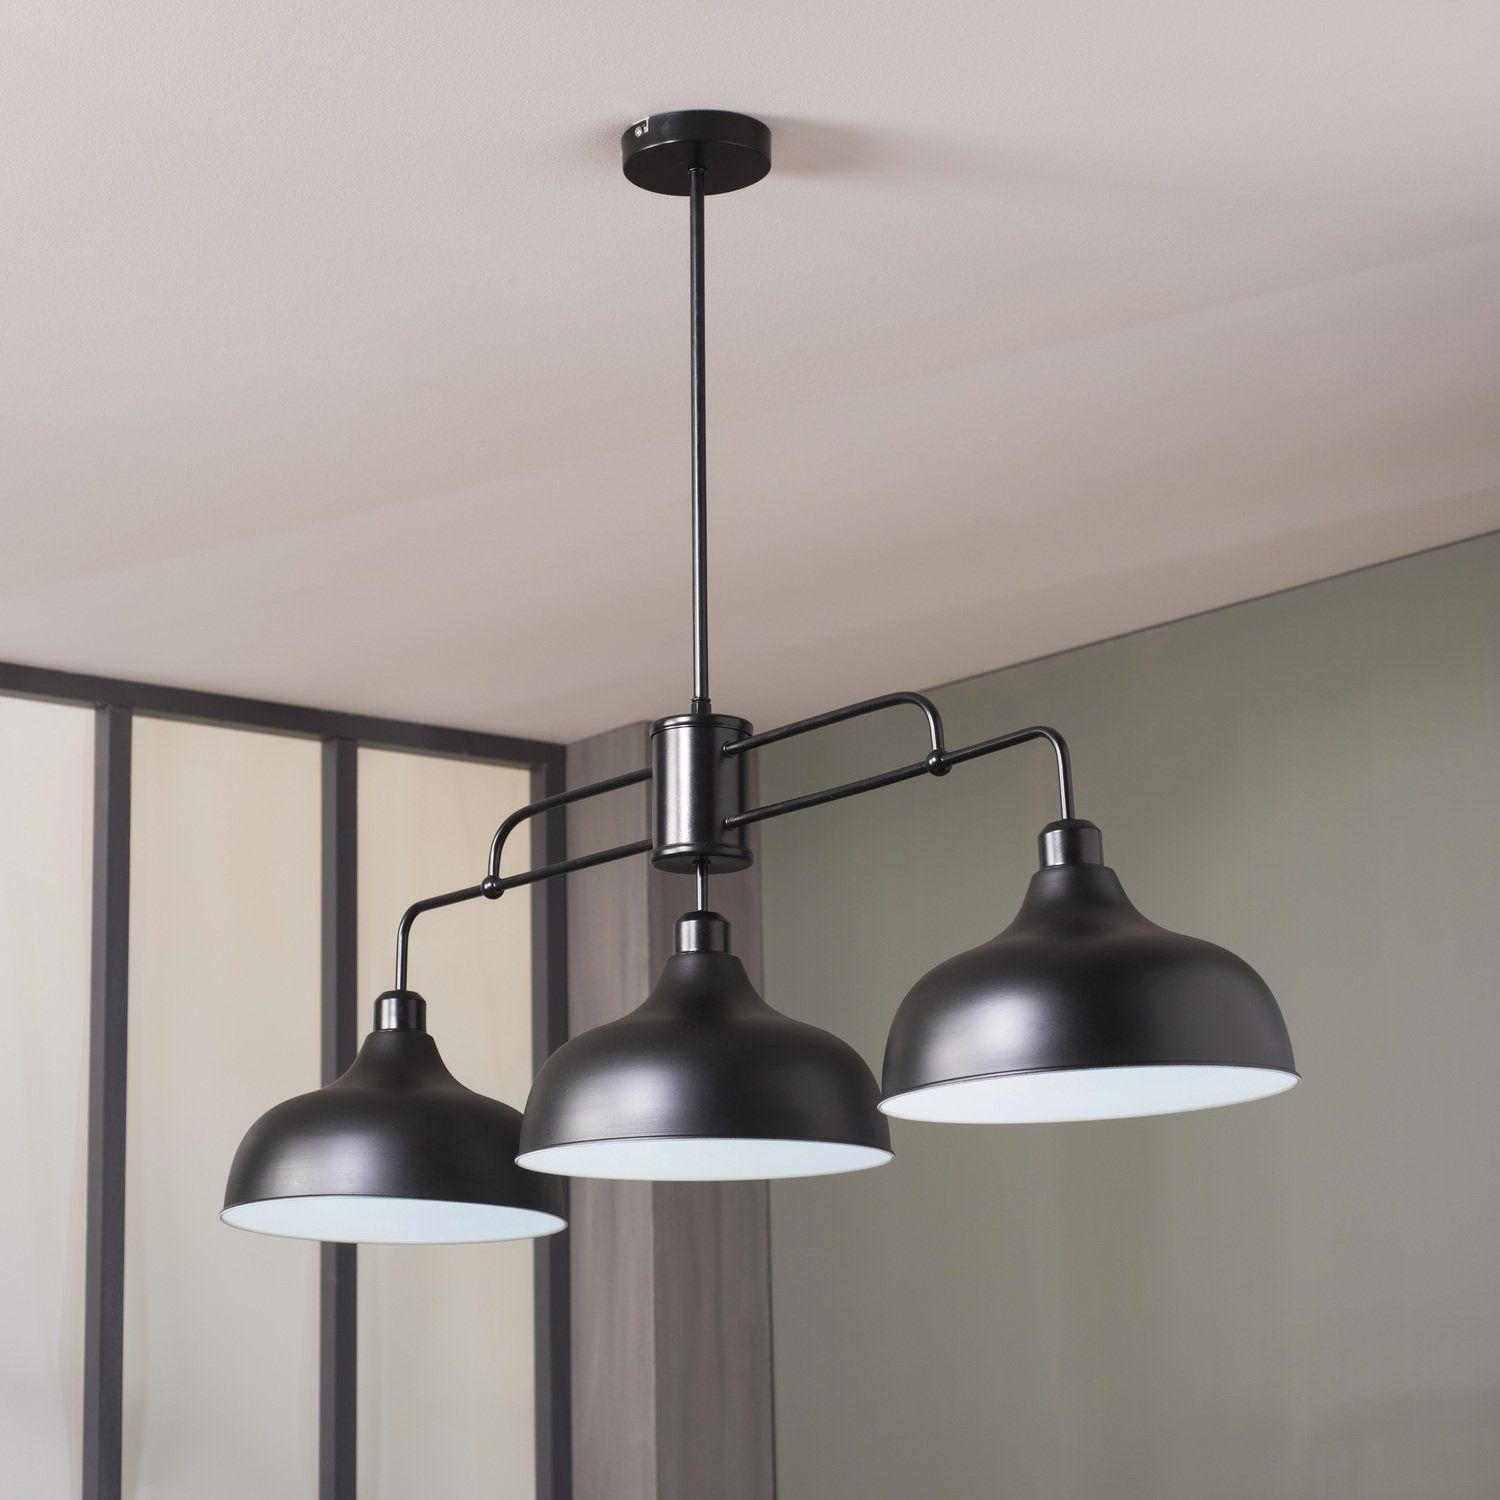 Cette suspension design adopte un style r solument for Suspension design pour salon